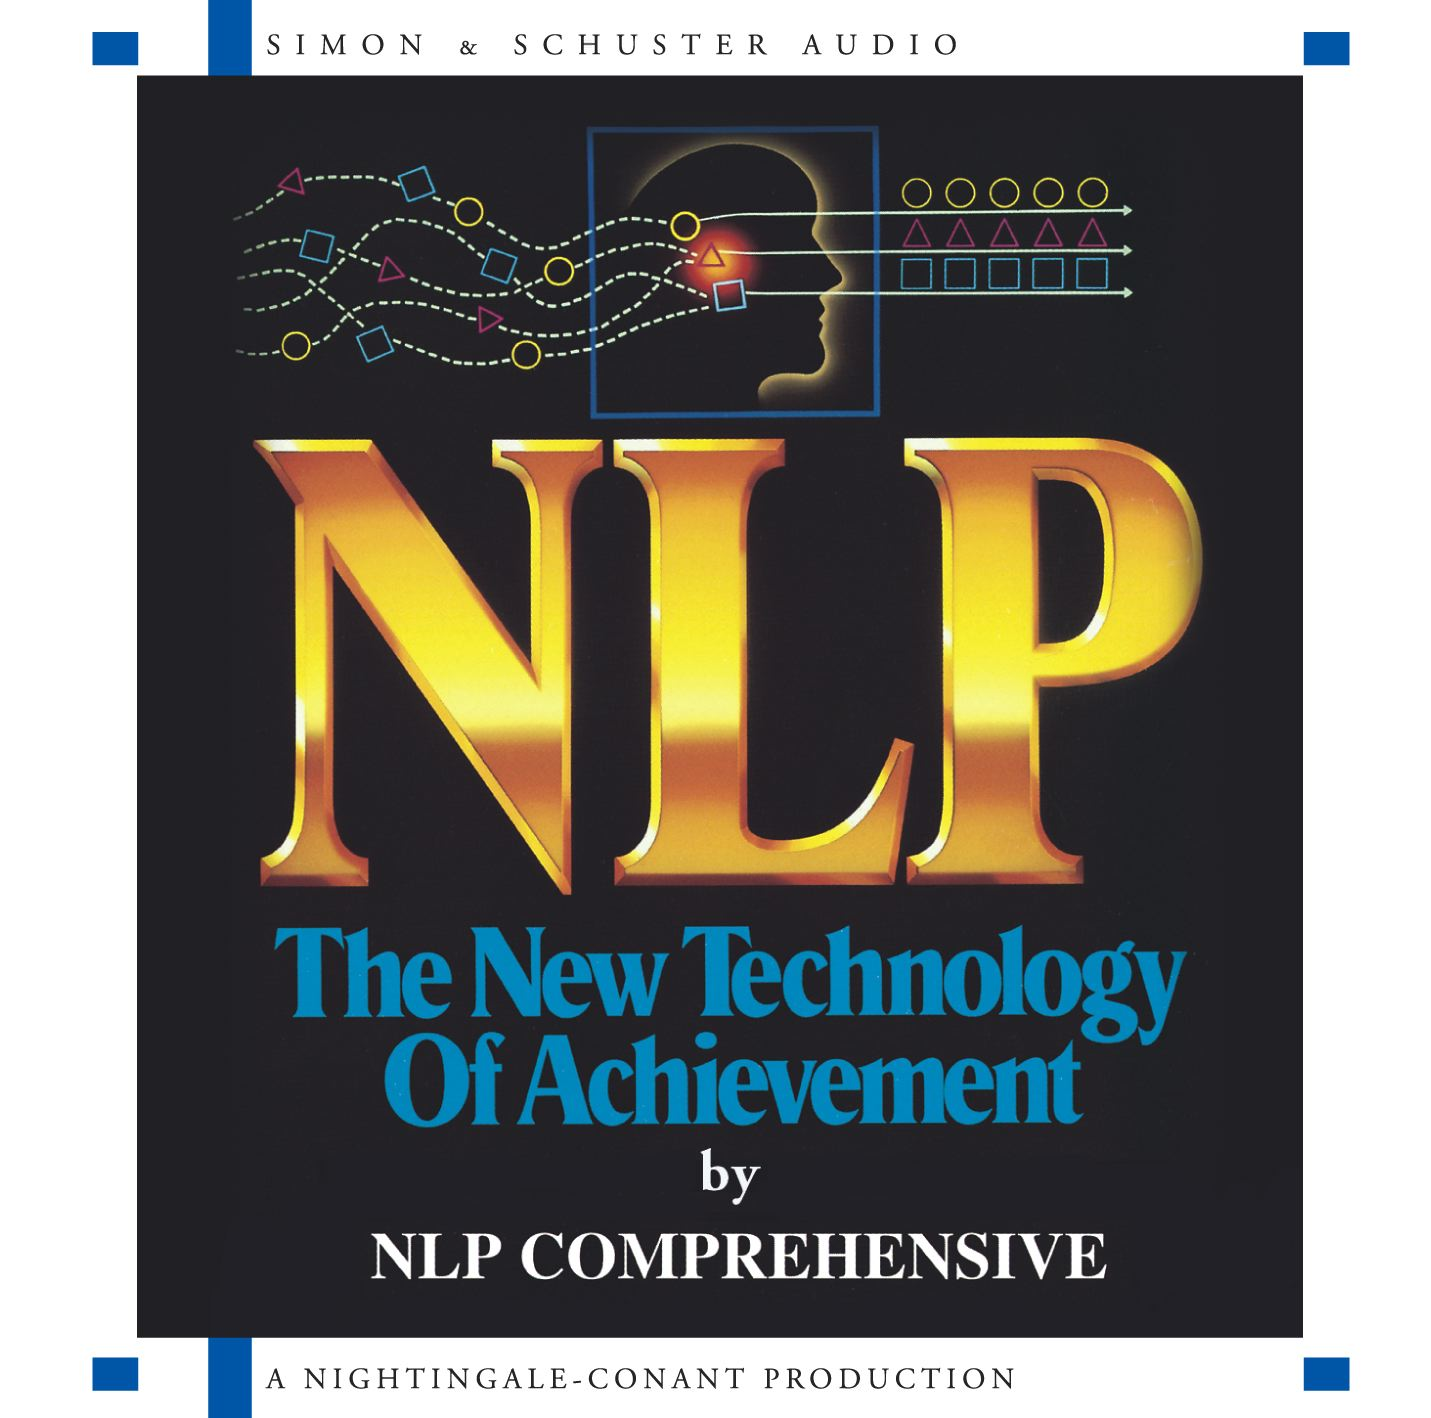 Nlp : The New Technology of Achievement